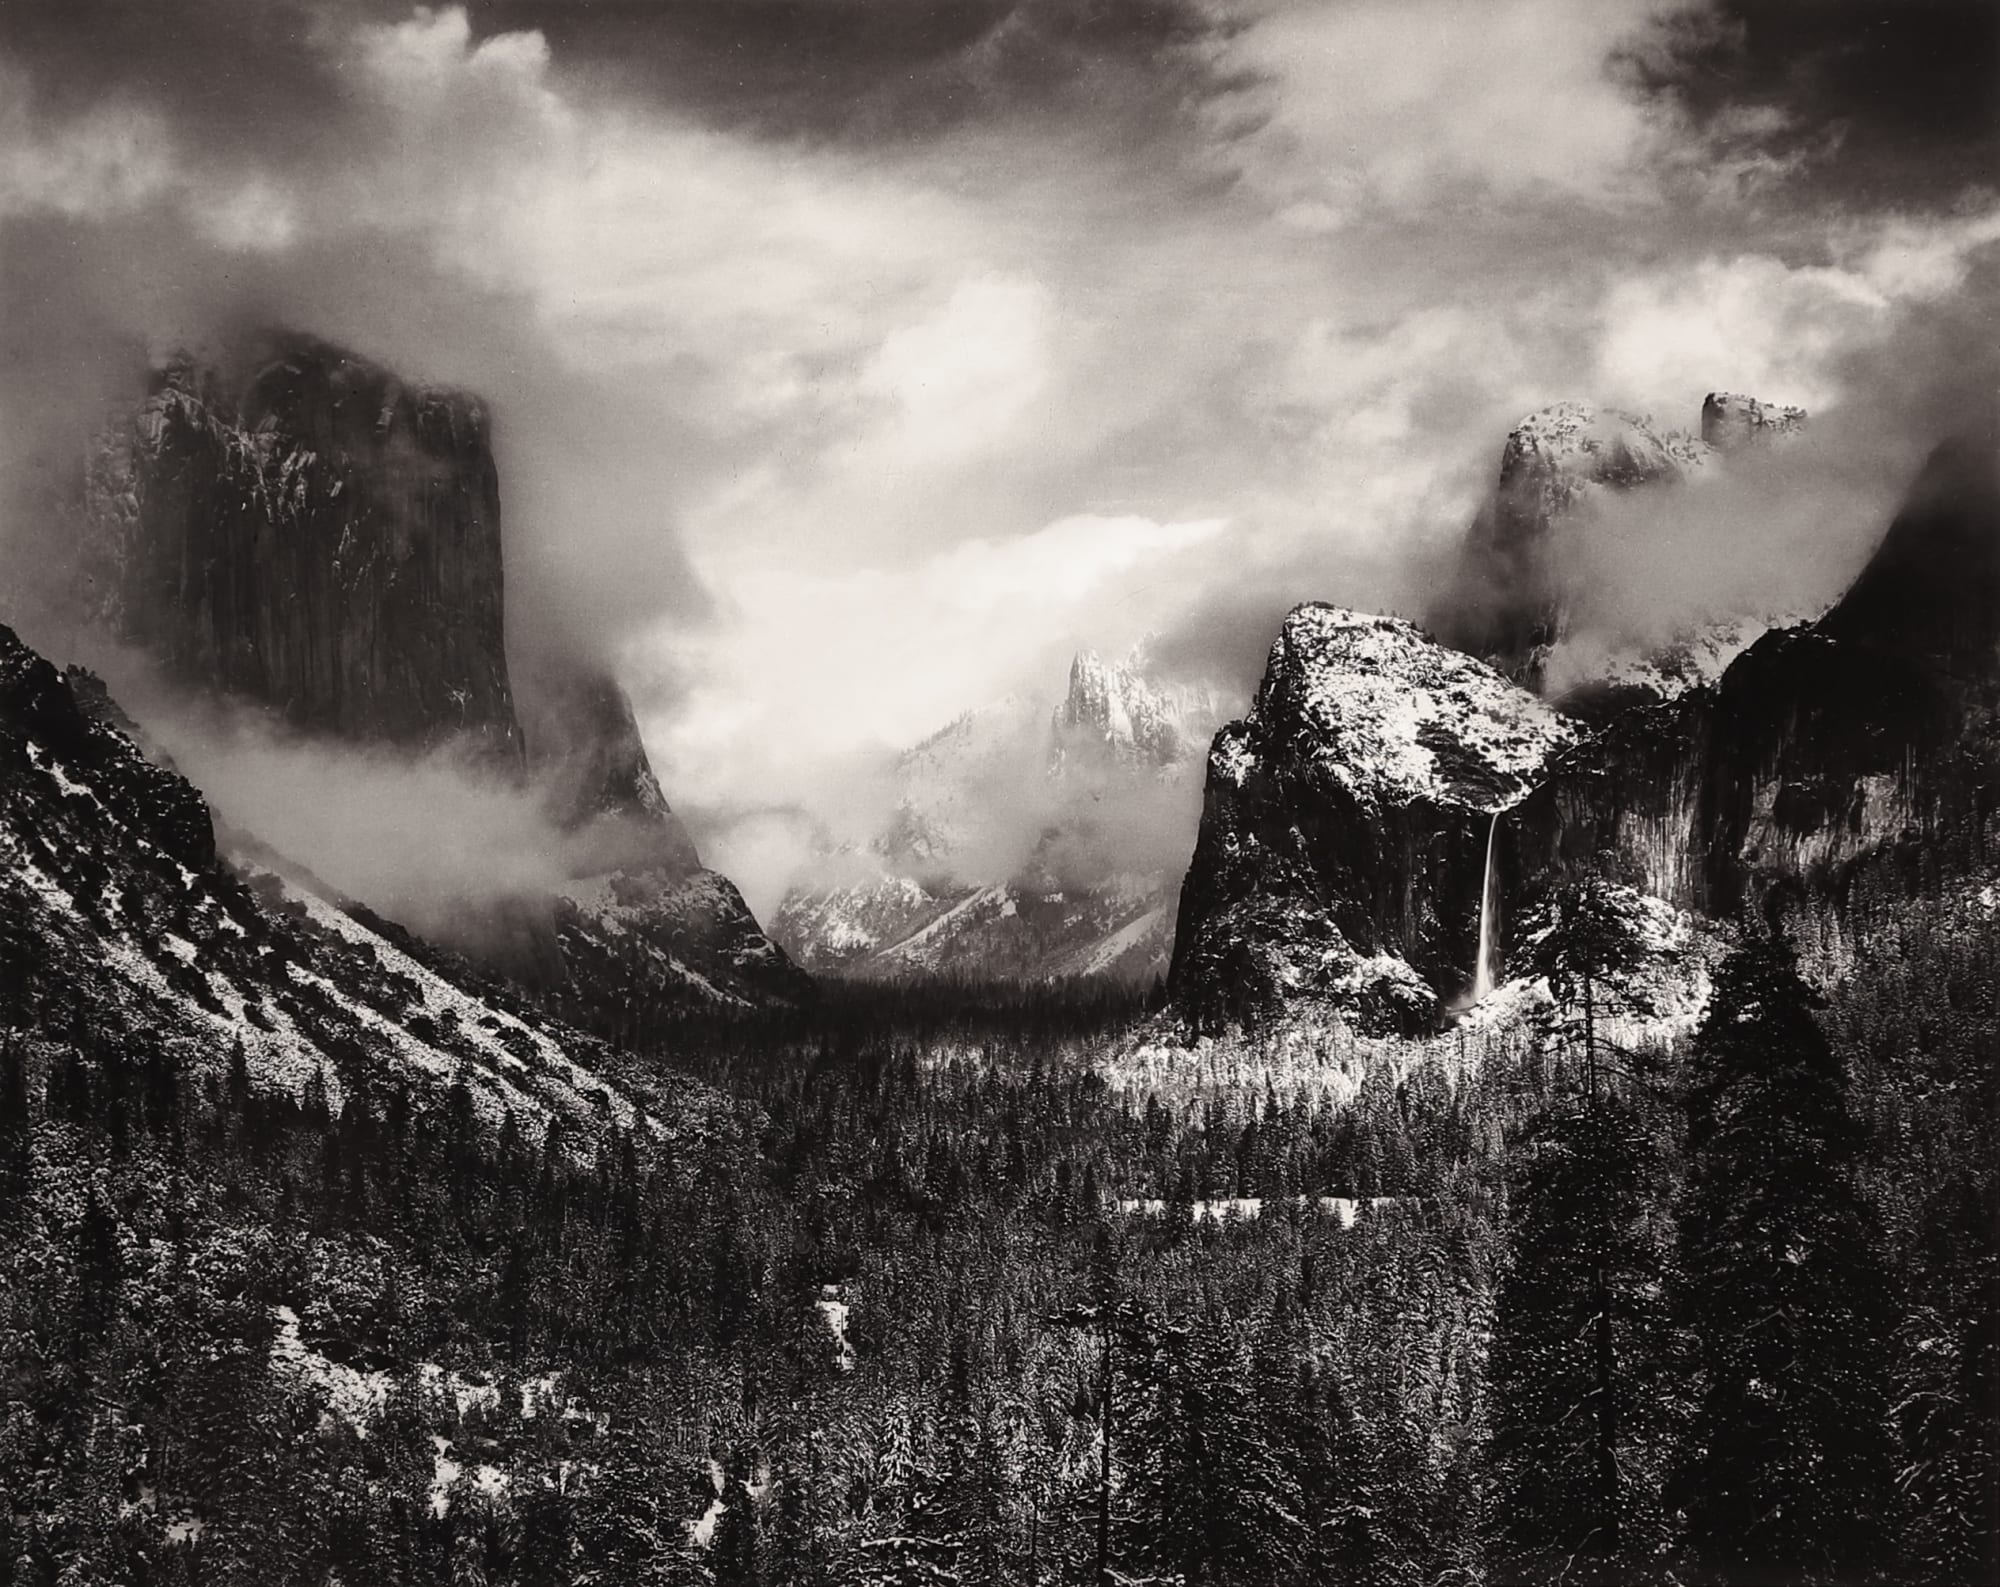 Masterworks of West Coast Photography: In the Viewing Room